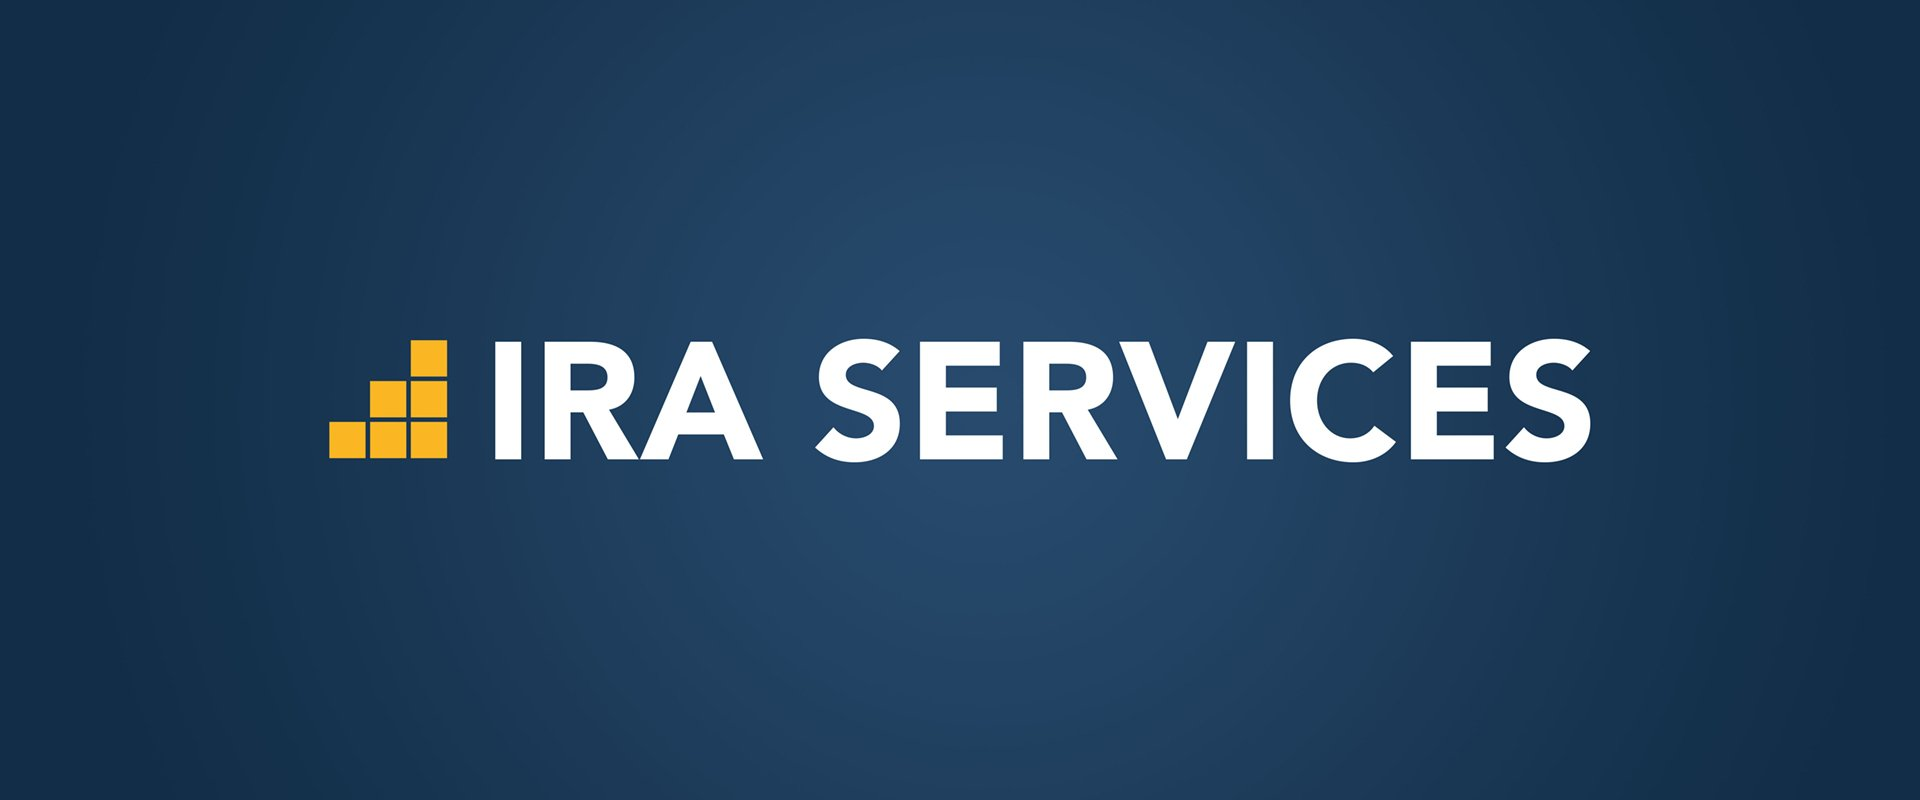 Logo design for a financial services company, using yellow blocks and white lettering on a navy blue background.